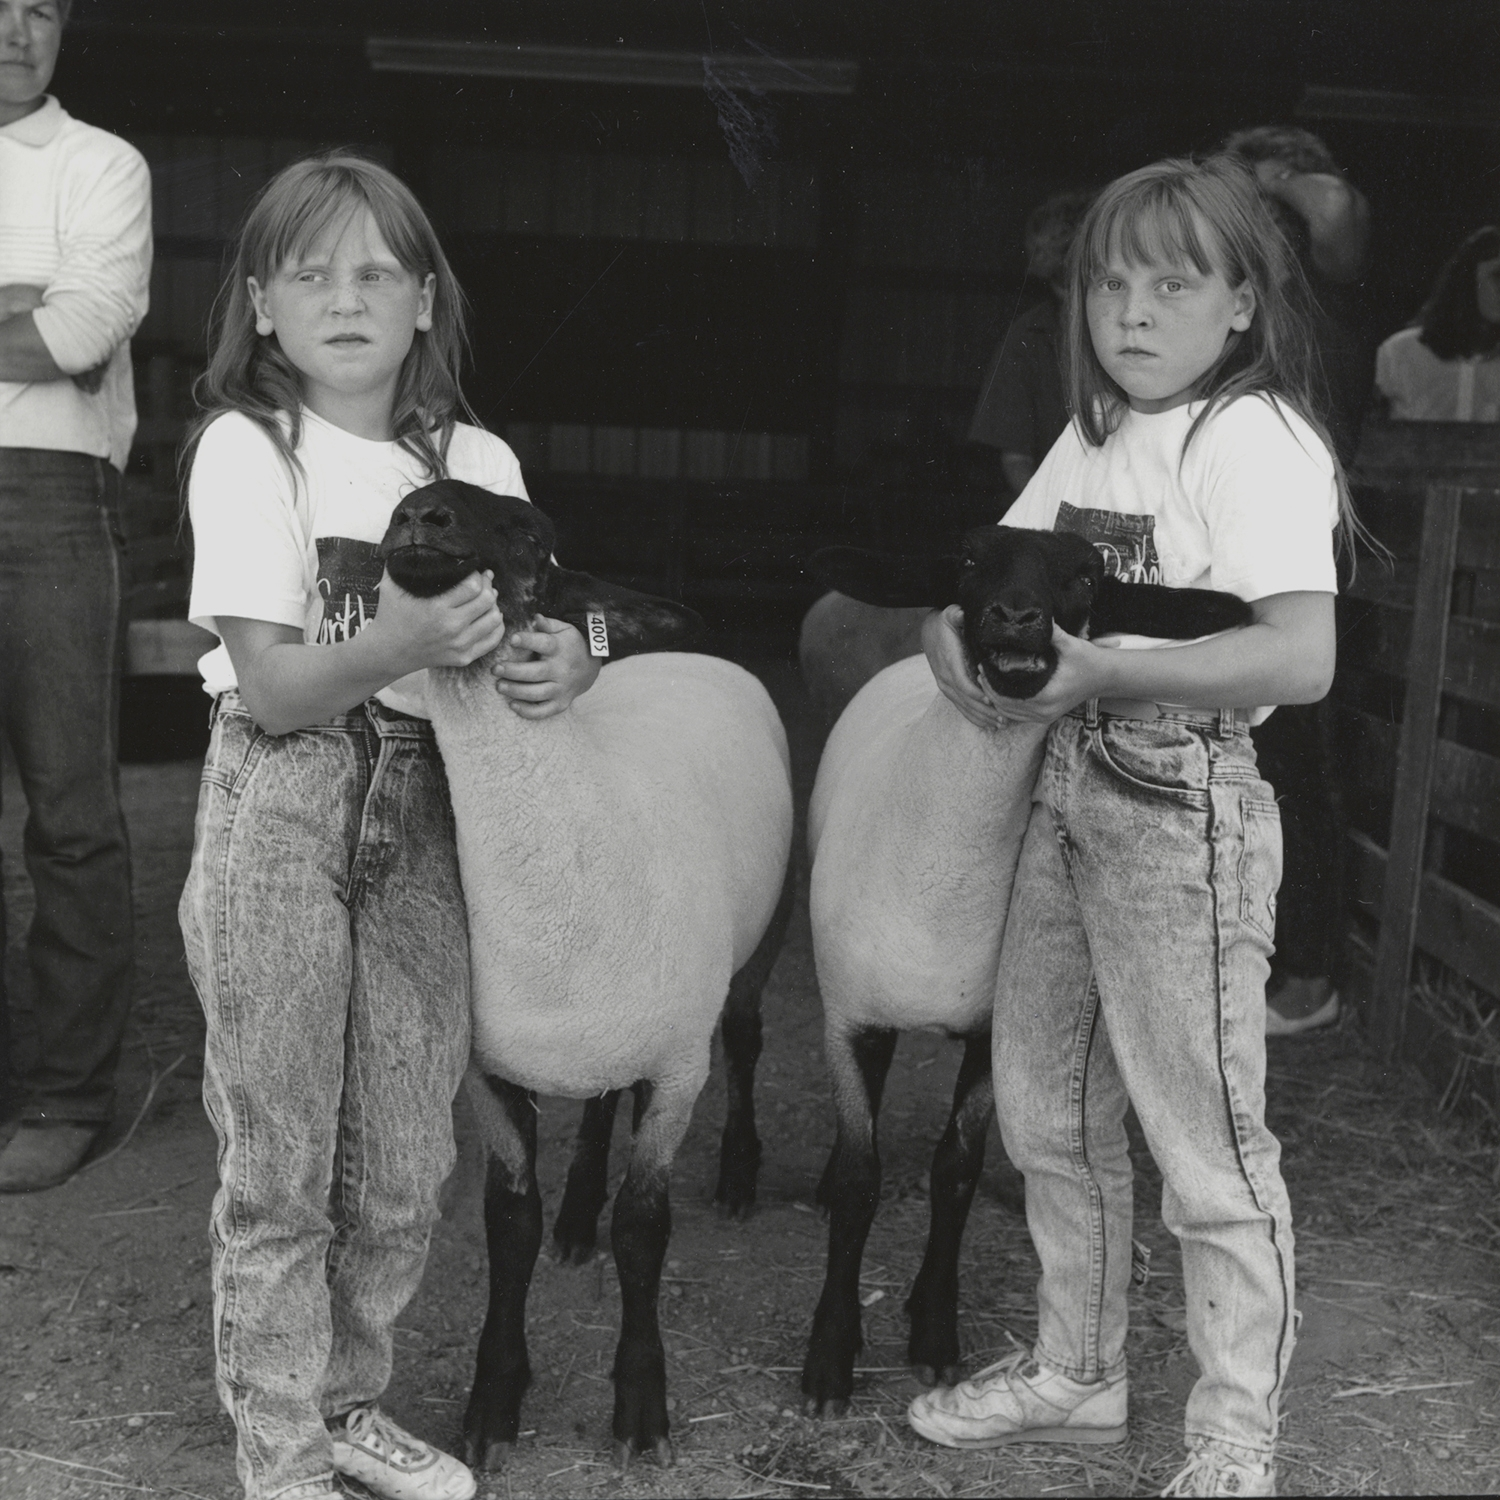 Twins with Sheep, Cooperstown, North Dakota, archival pigment print,16x20, 1989